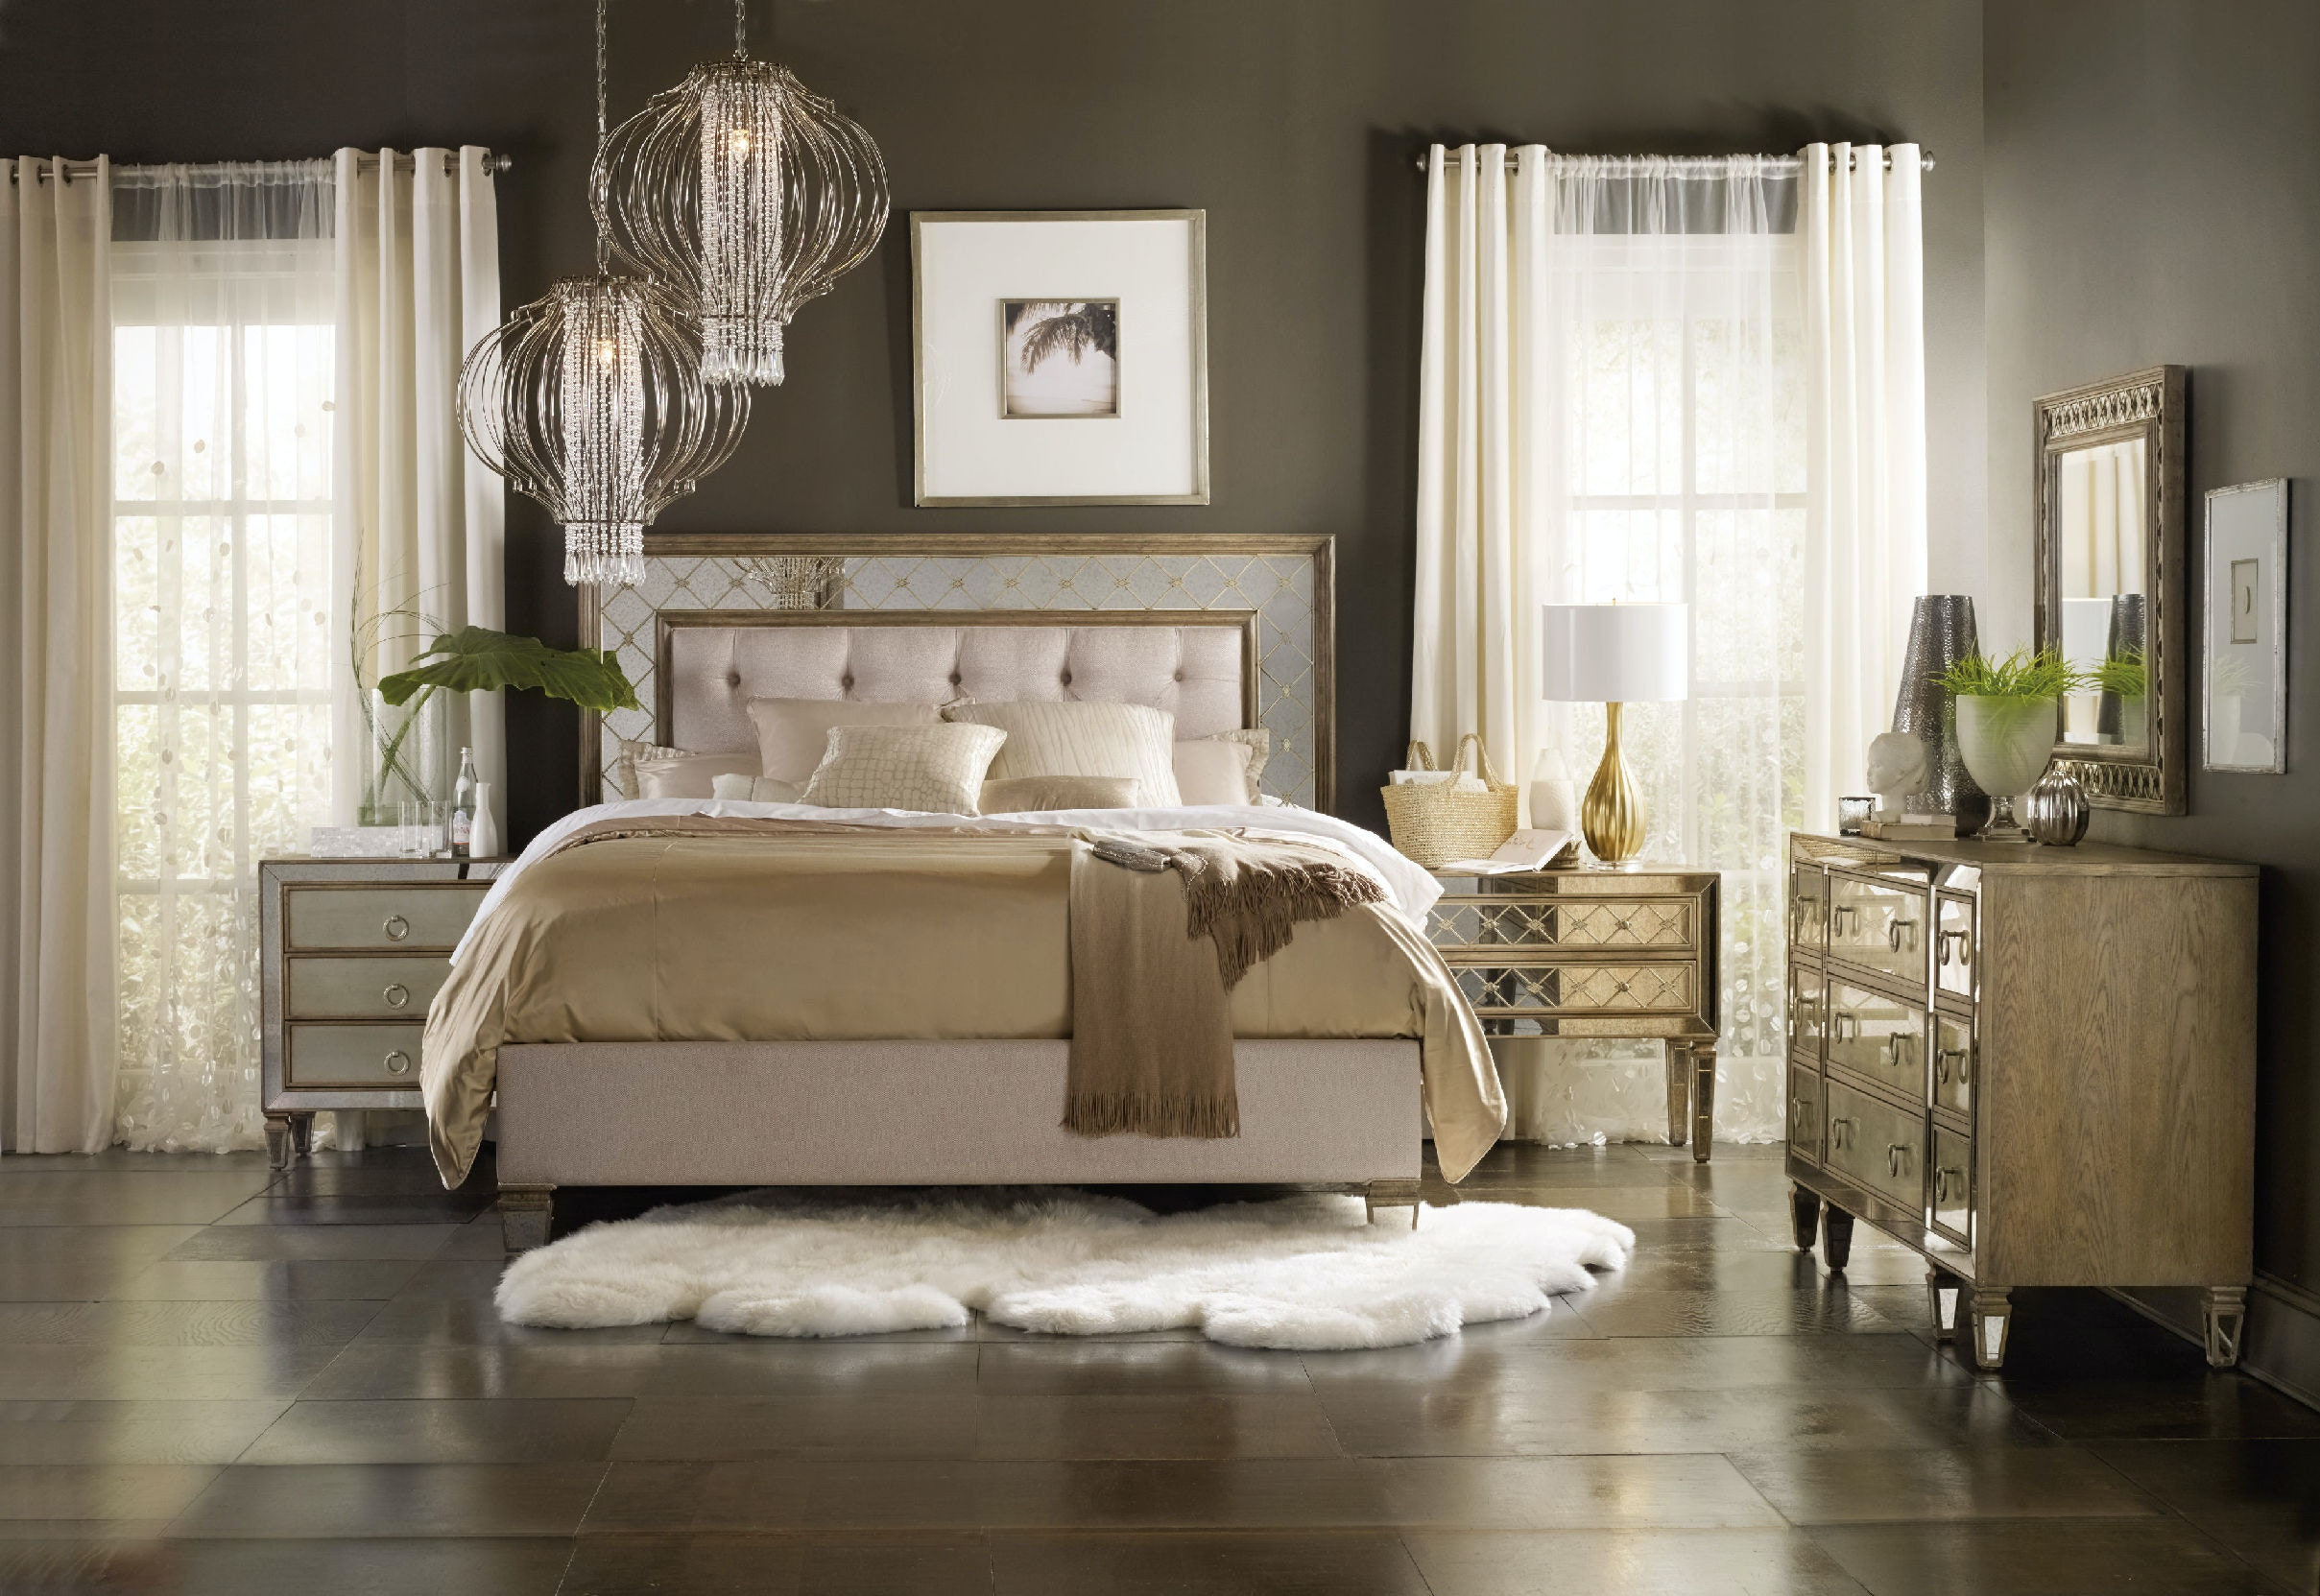 Mirror Side Tables Bedroom Hooker Furniture Bedroom Sanctuary King Mirrored Upholstered Bed